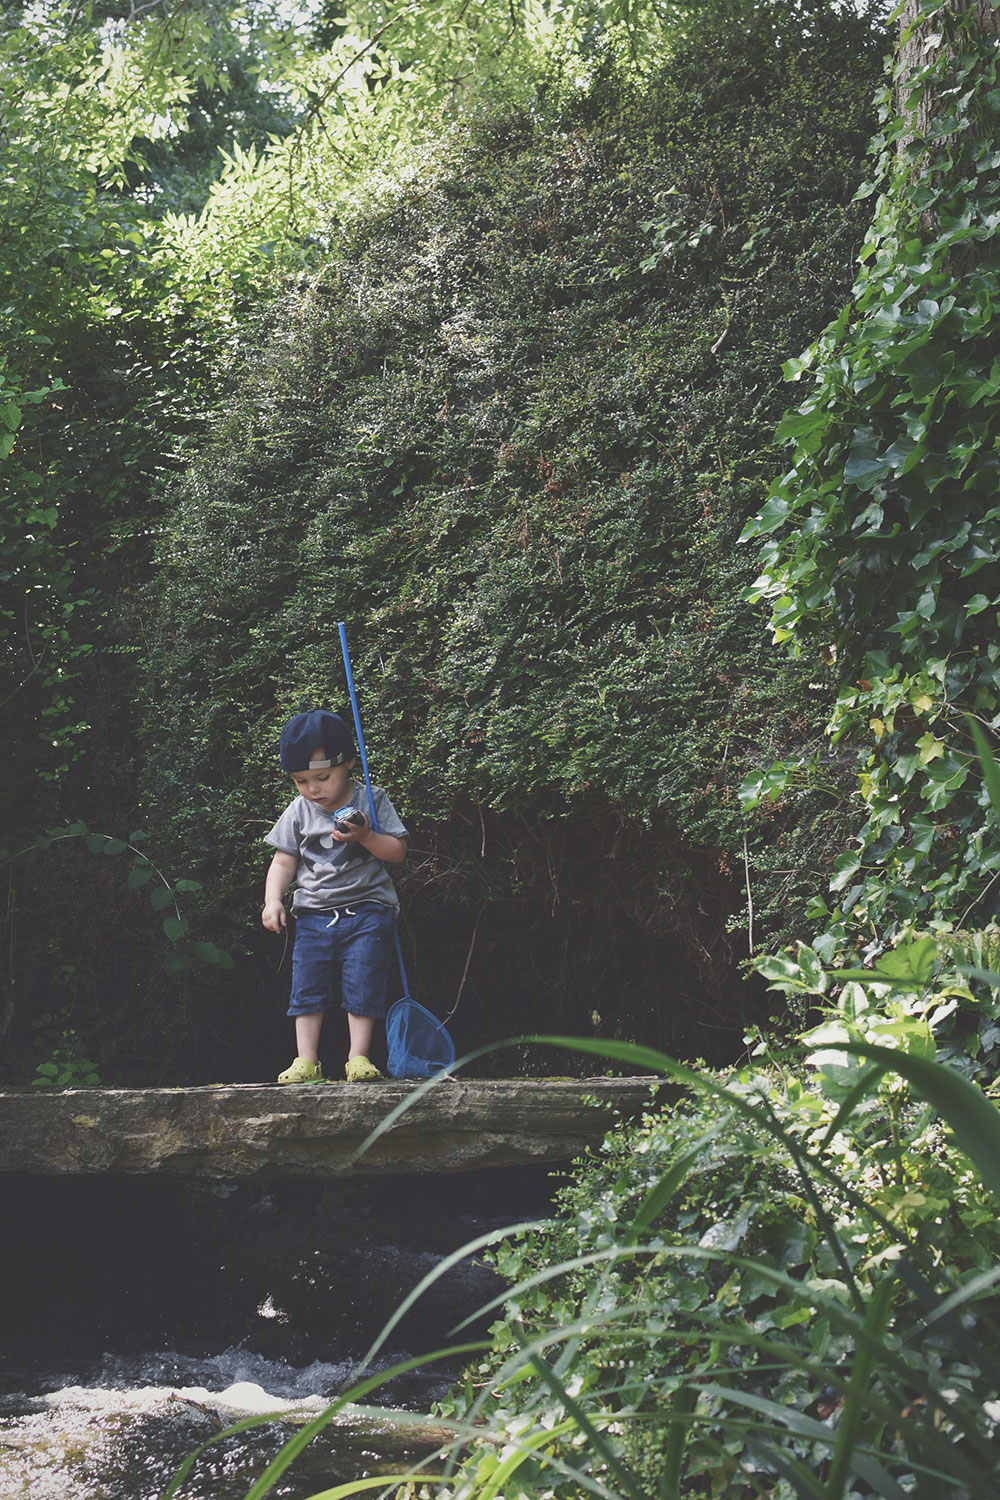 The Cottage with the Waterfall — The Ordinary Moments #11; Toddler playing in the waterfall at beautiful centuries-old cottage in Wiltshire, beautiful gardens